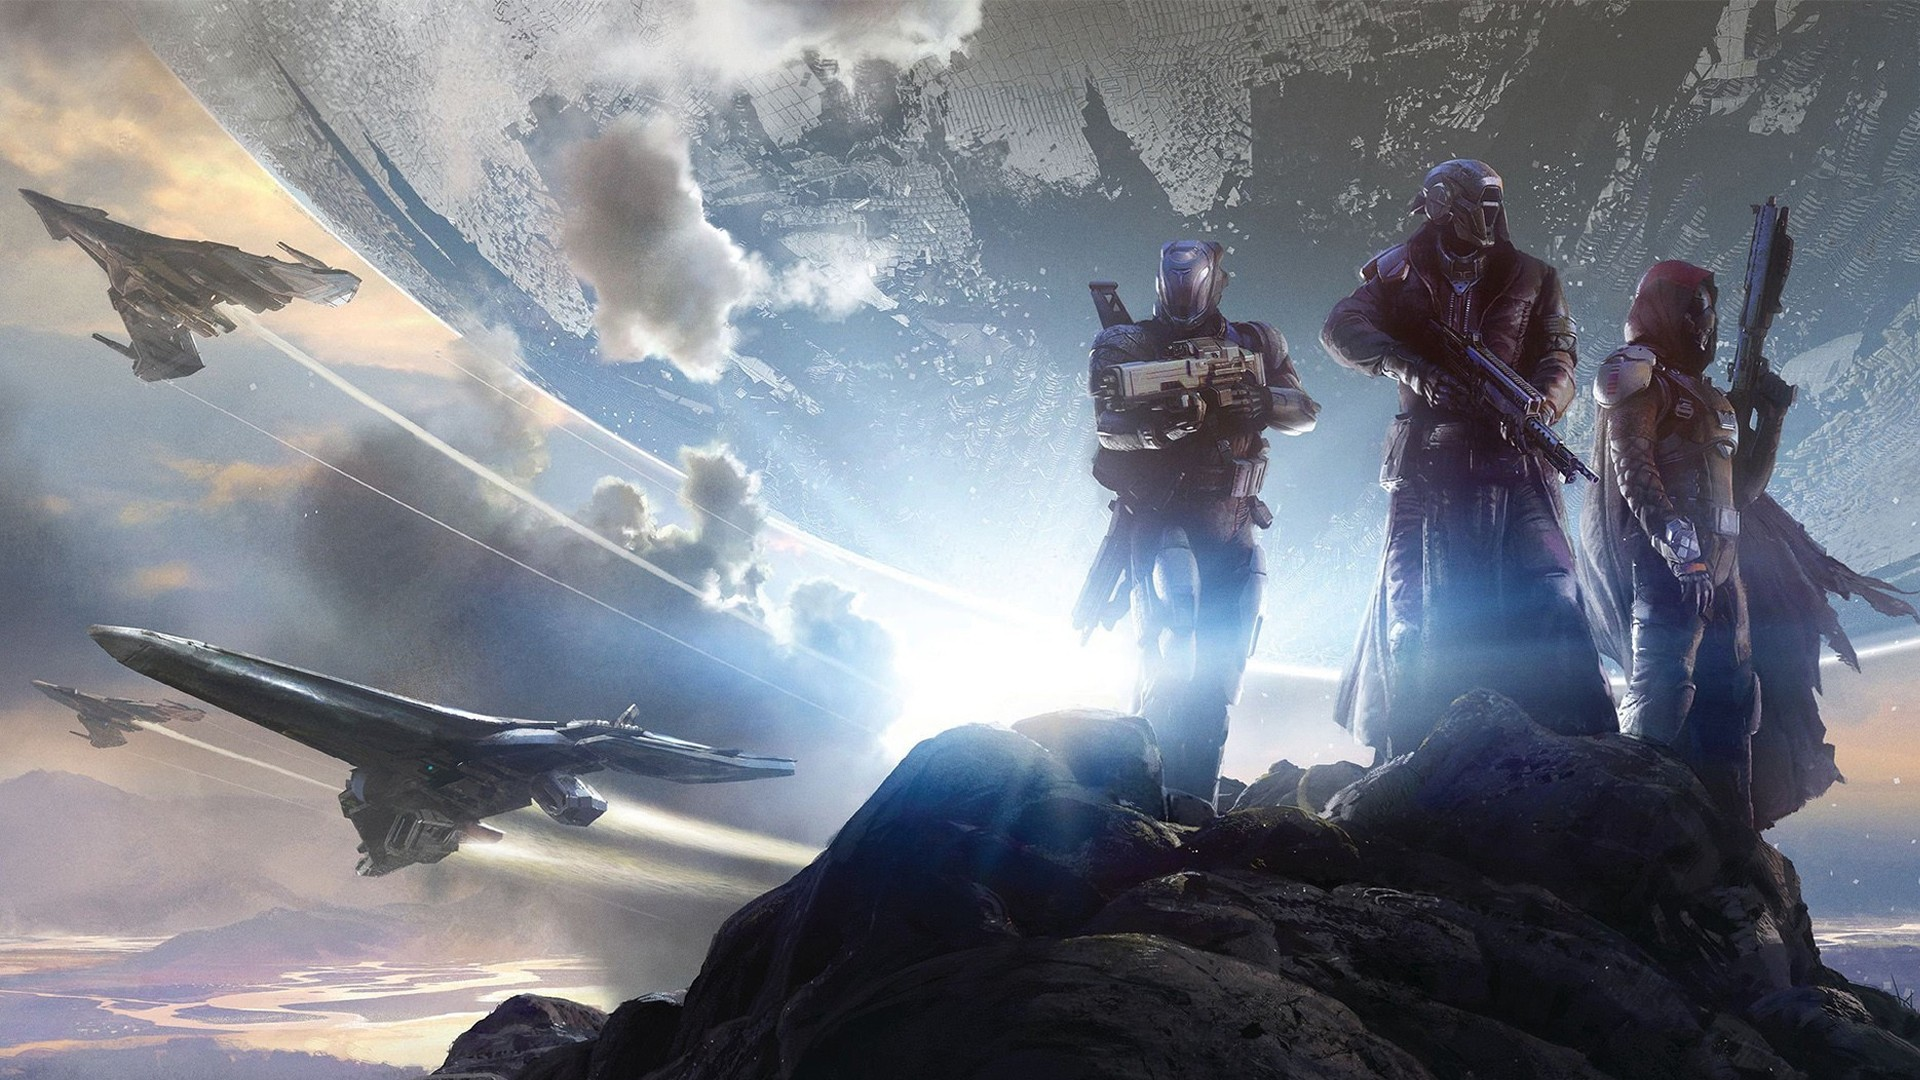 Destiny Full HD Wallpaper and Background Image | 1920x1080 ...